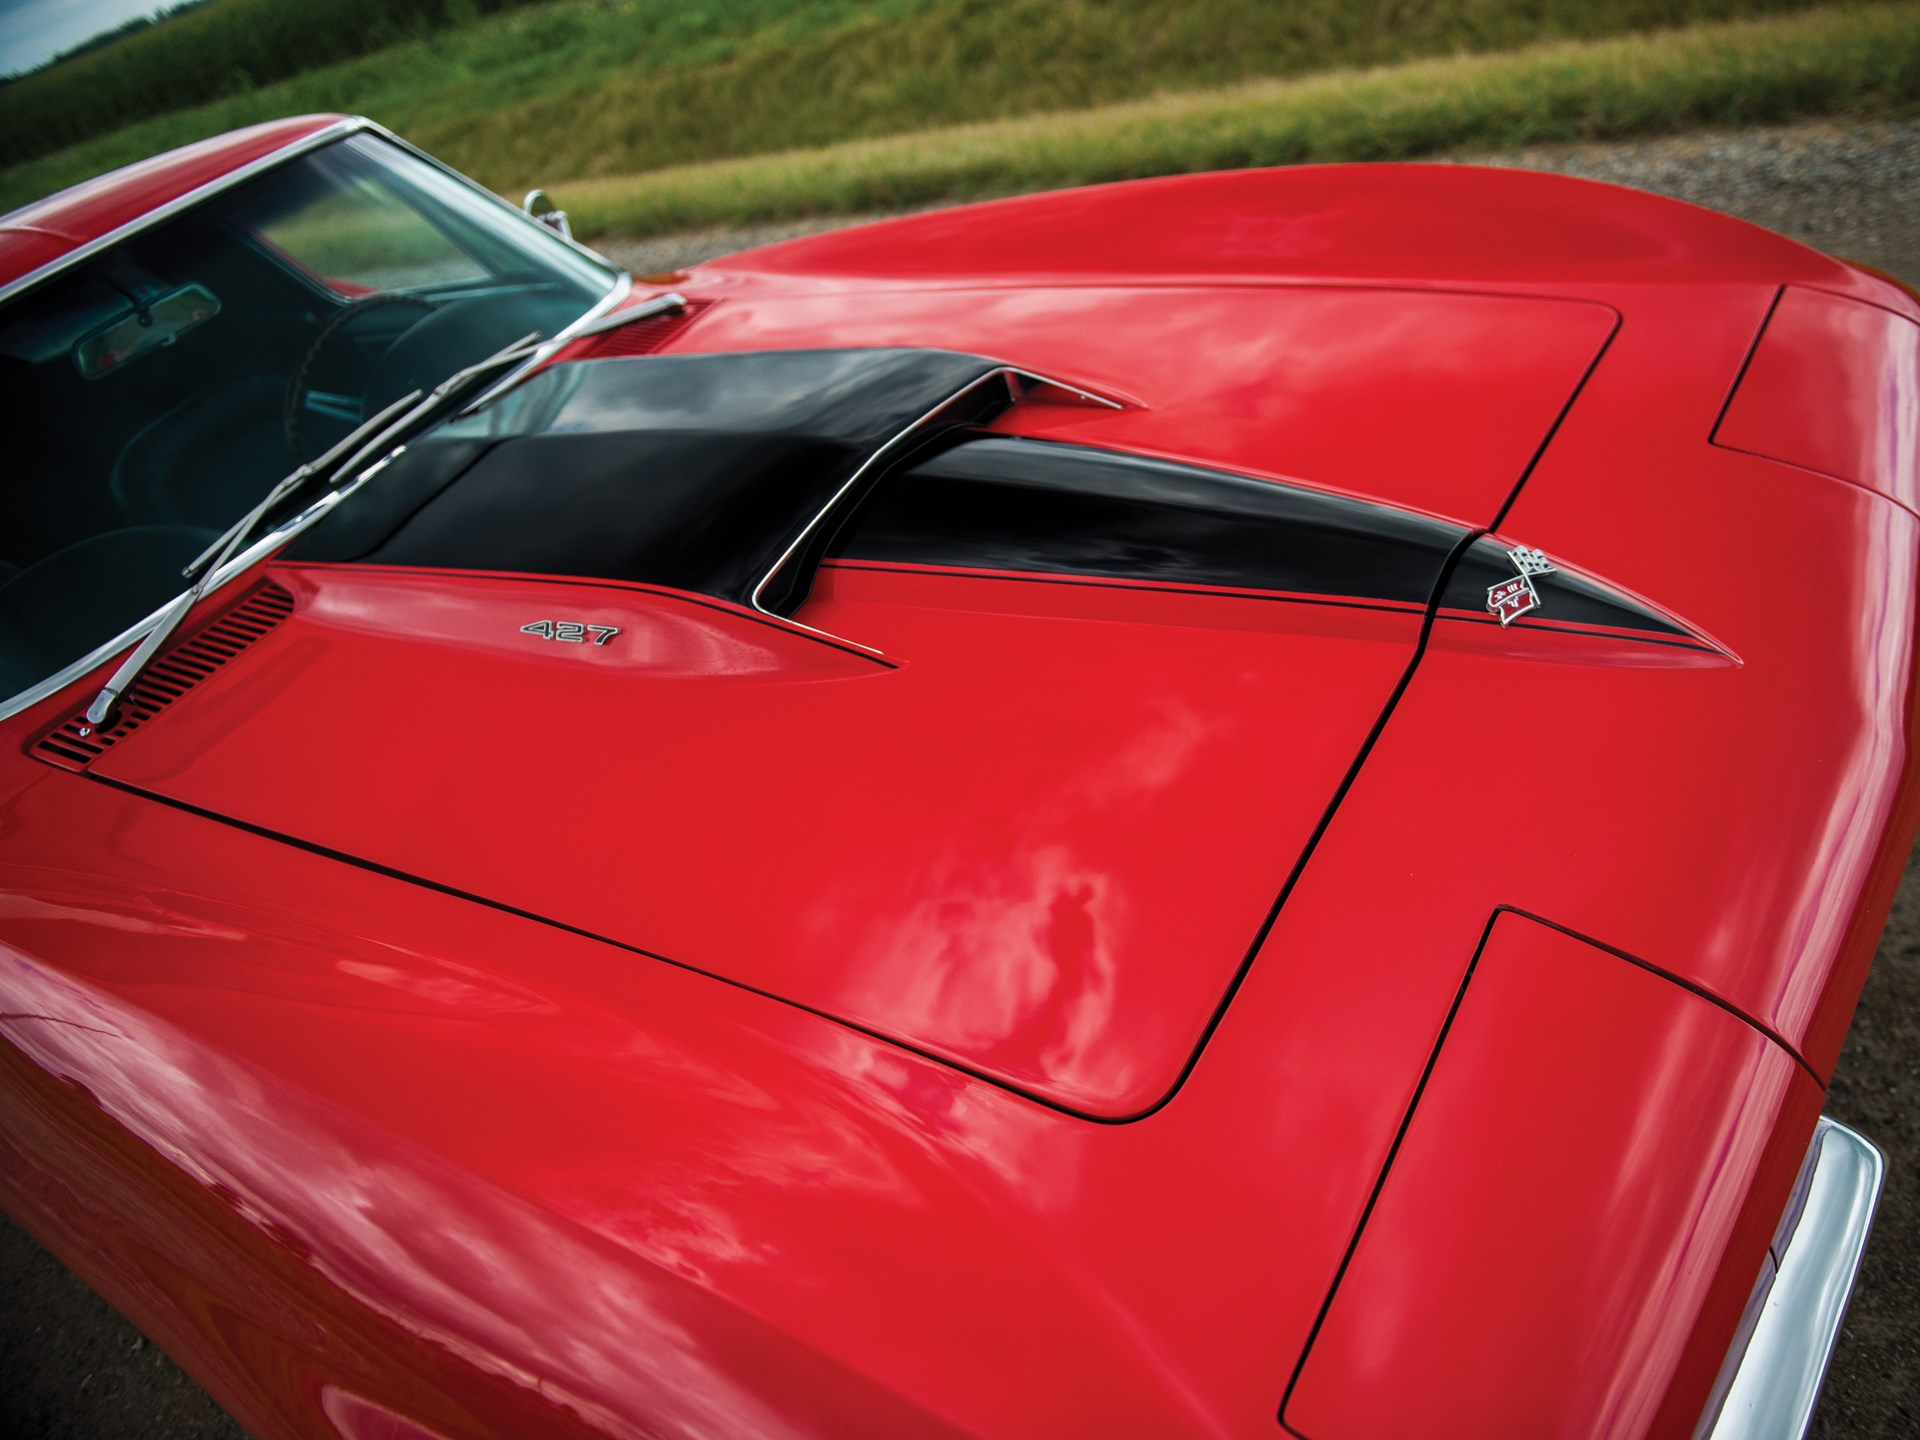 1967 Chevrolet Corvette Sting Ray 427/435 Coupe